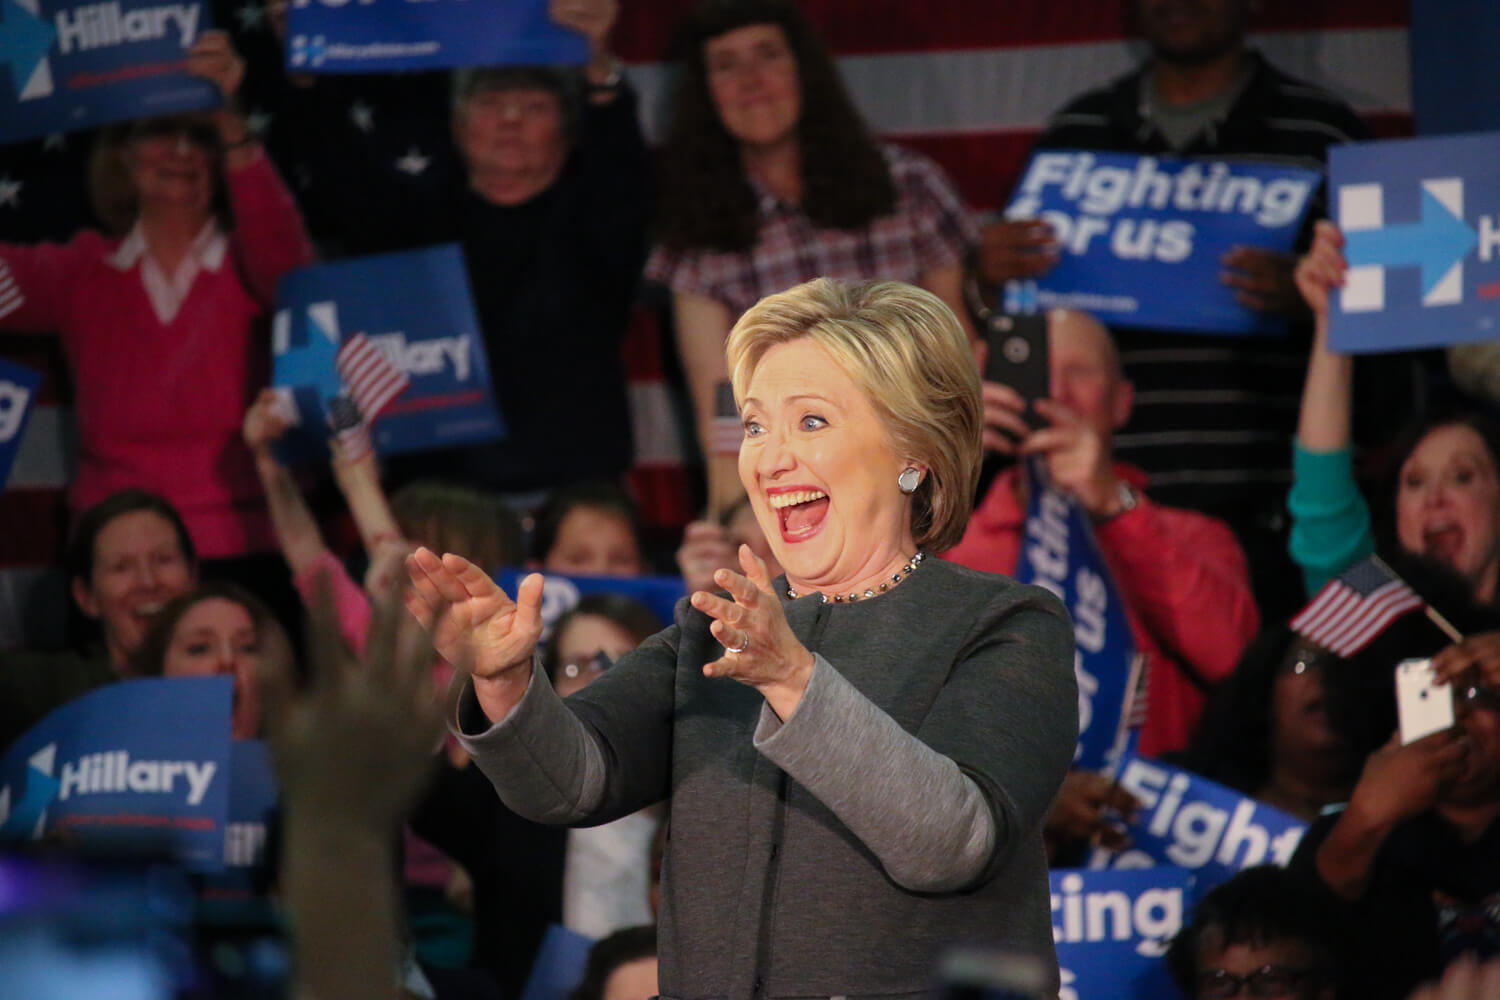 Virginia Democrats celebrate end of Super Tuesday with Clinton win